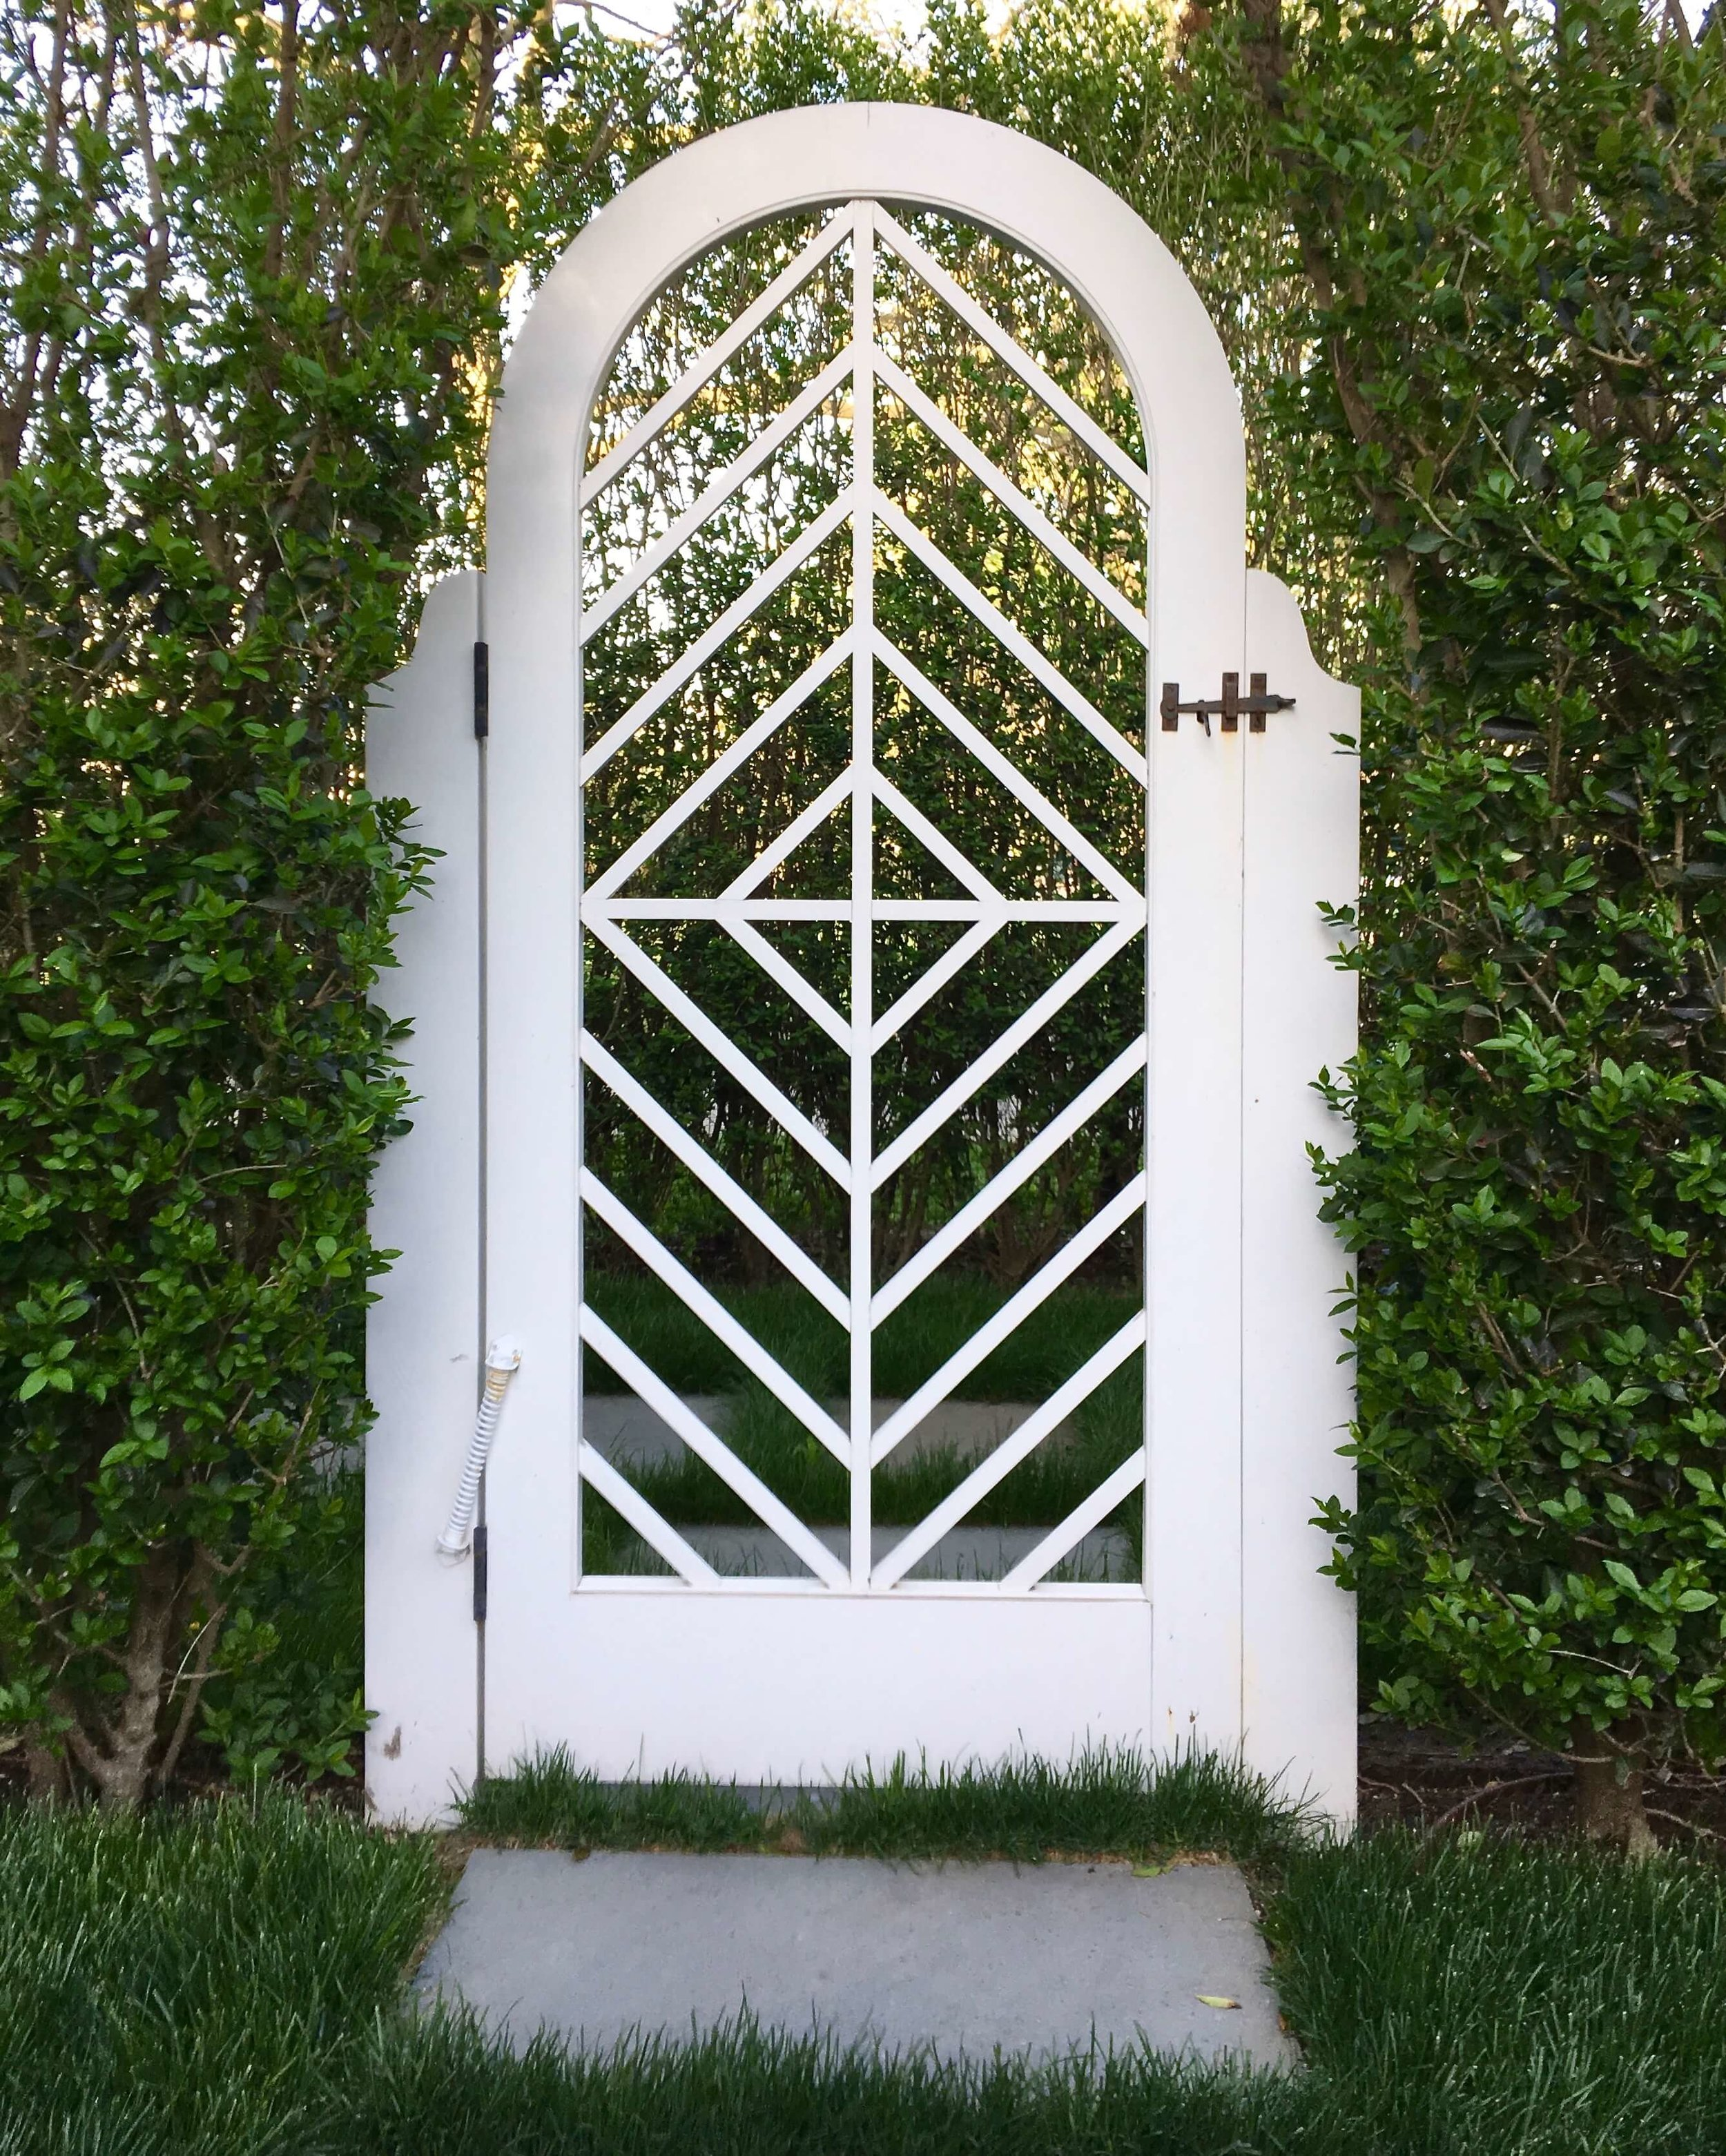 4 SOUTHAMPTON COTTAGE WEBSITE ARCHED GATE 2018.jpg